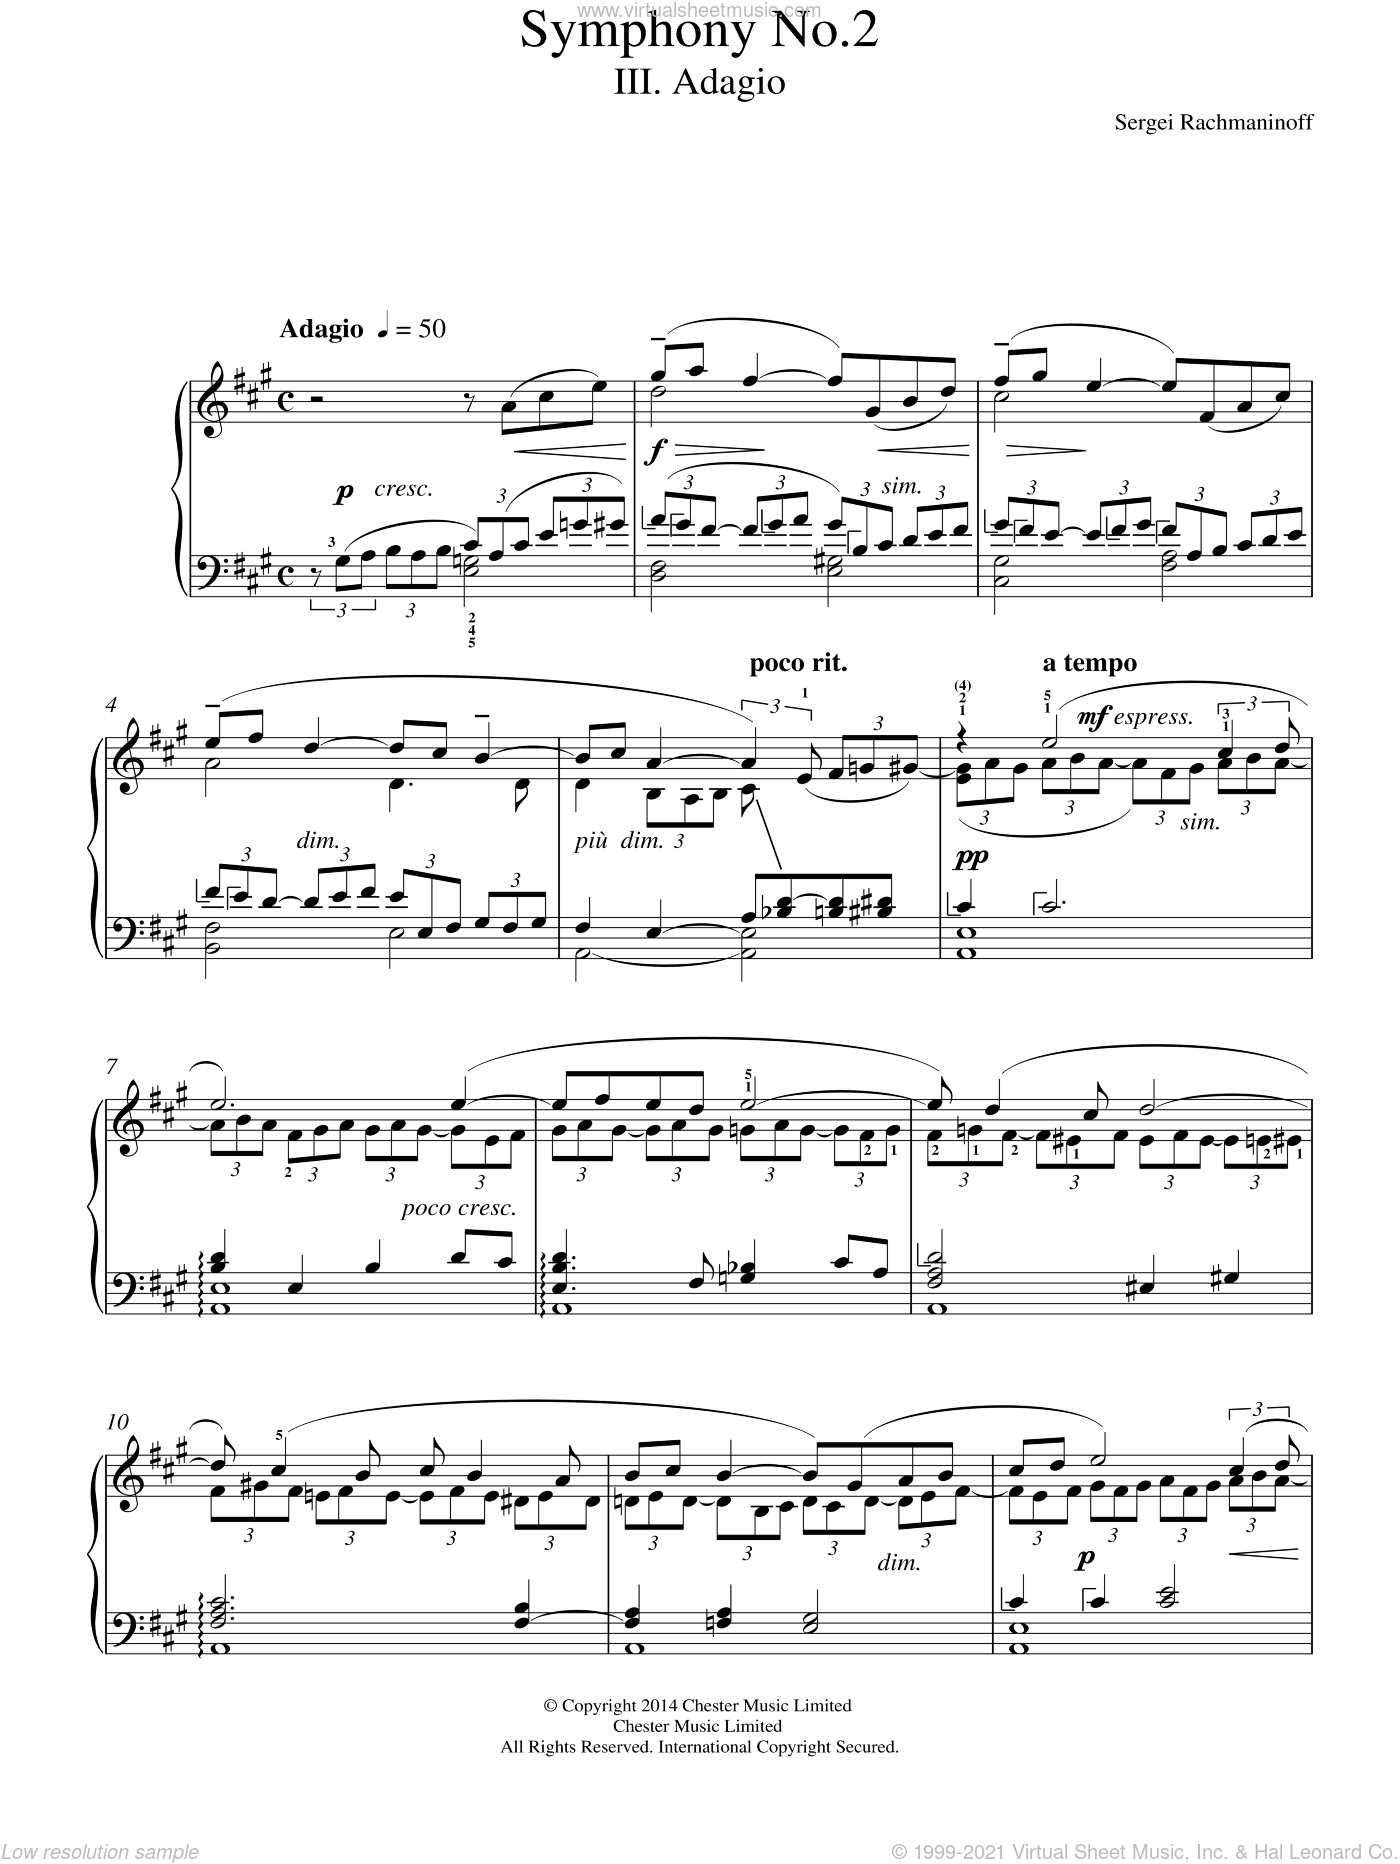 Symphony No.2 - 3rd Movement sheet music for piano solo by Serjeij Rachmaninoff, classical score, intermediate